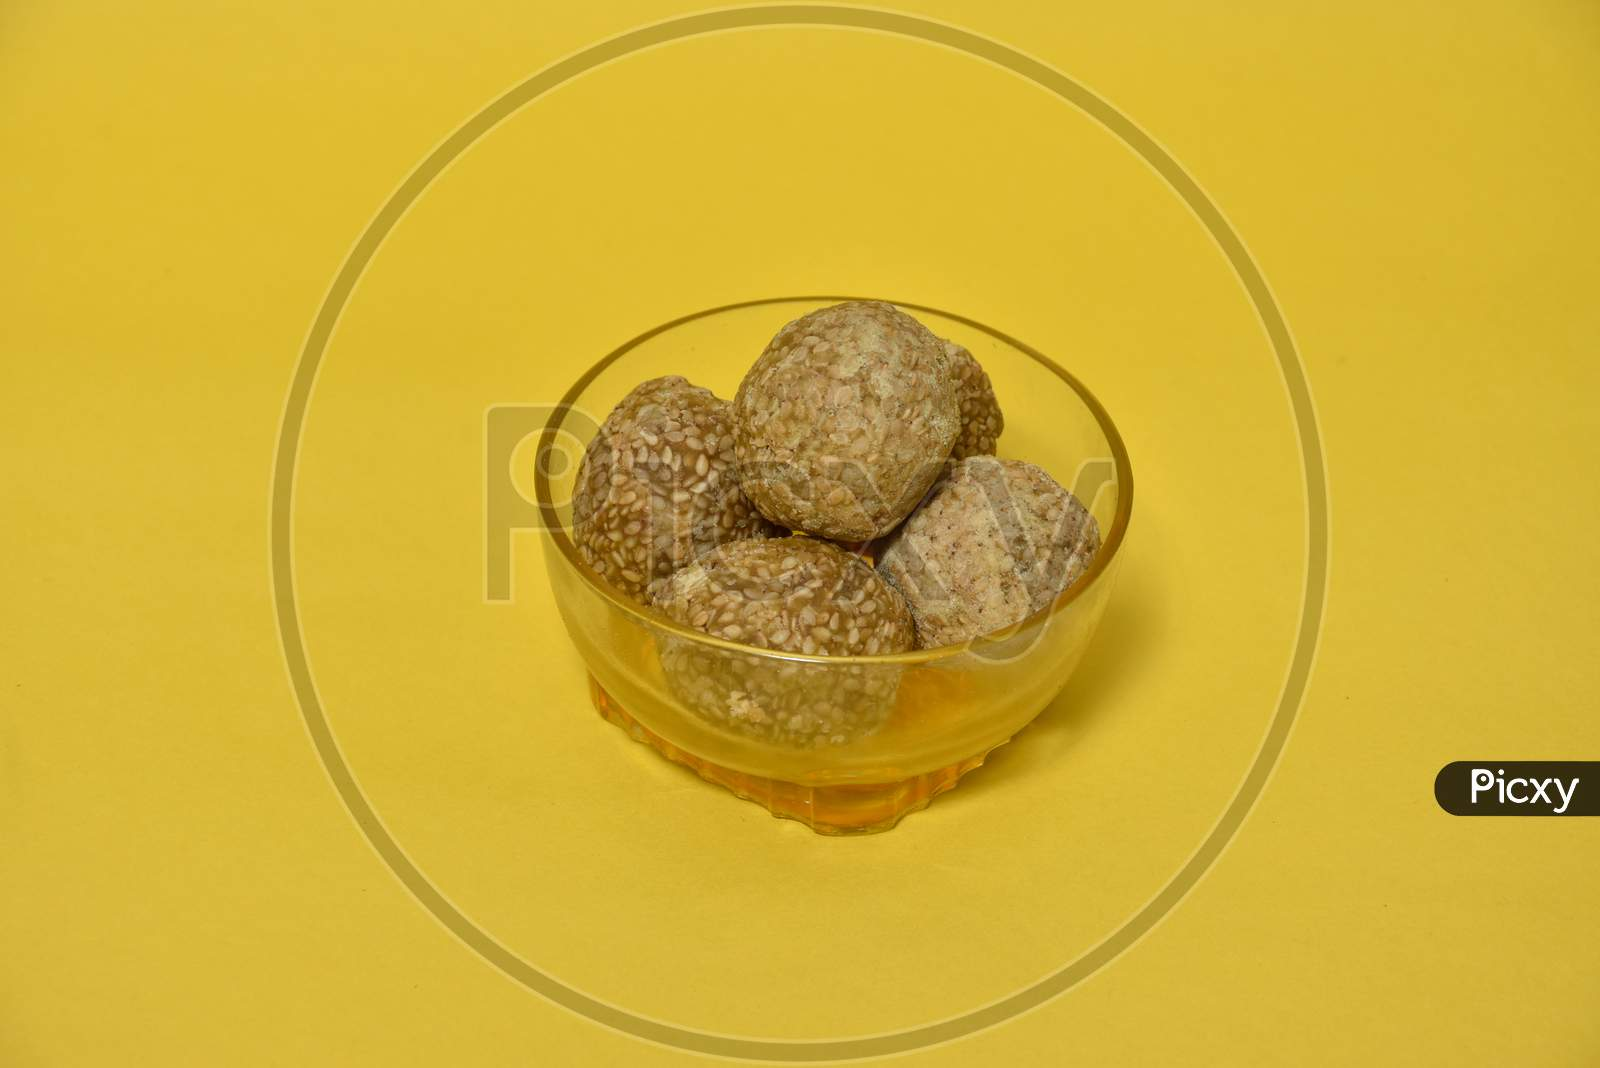 Indian sweet Sesame seeds ball or called in Hindi til ke laddu in glass bowl on yellow background.